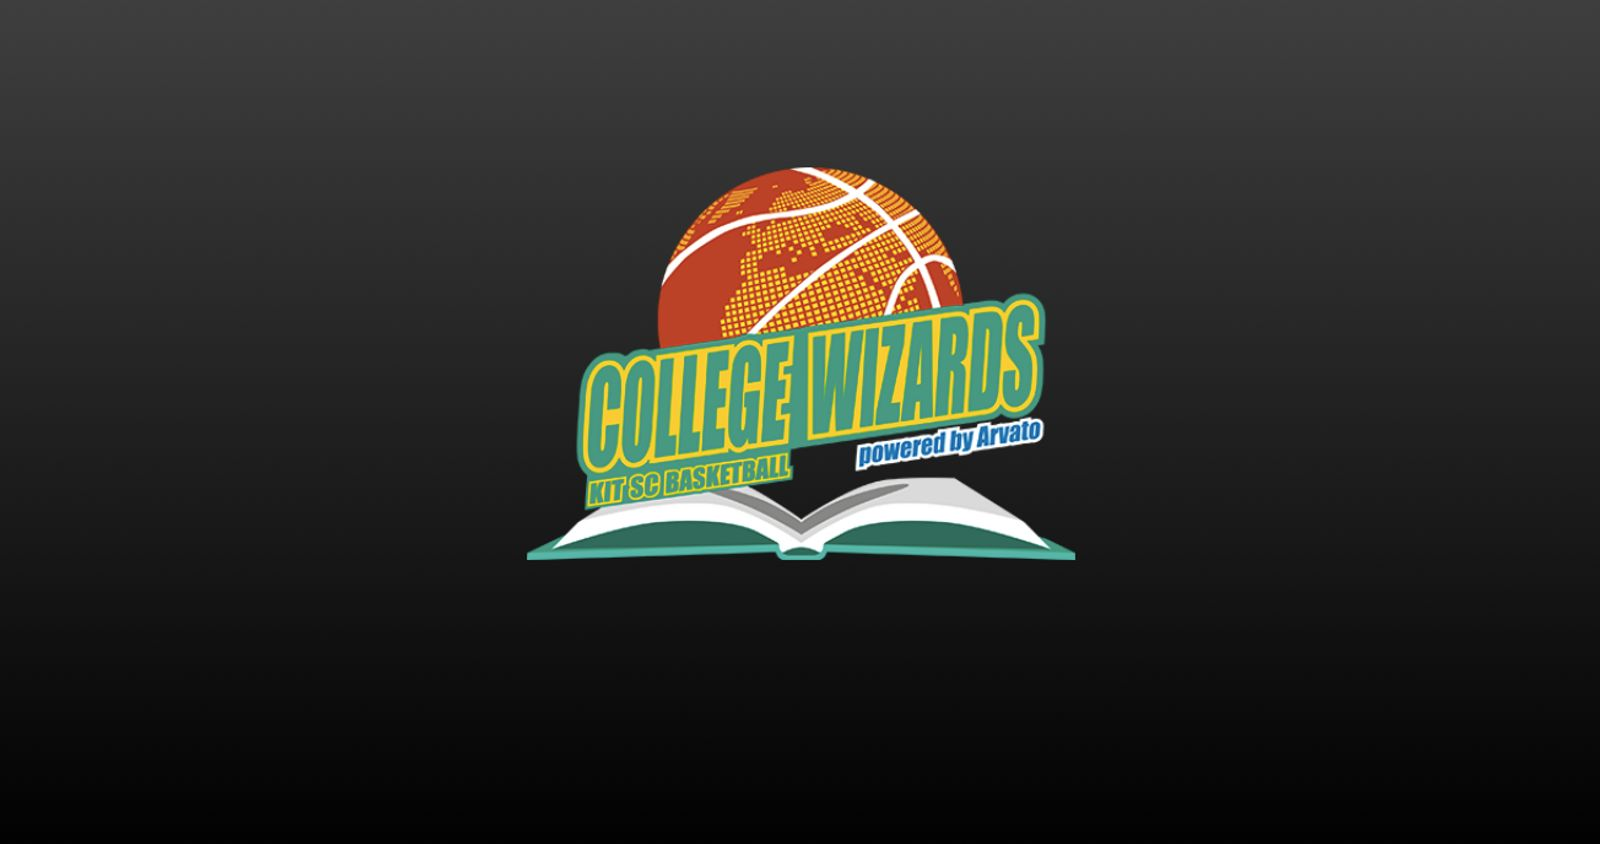 Arvato College Wizards vs. SV Fellbach